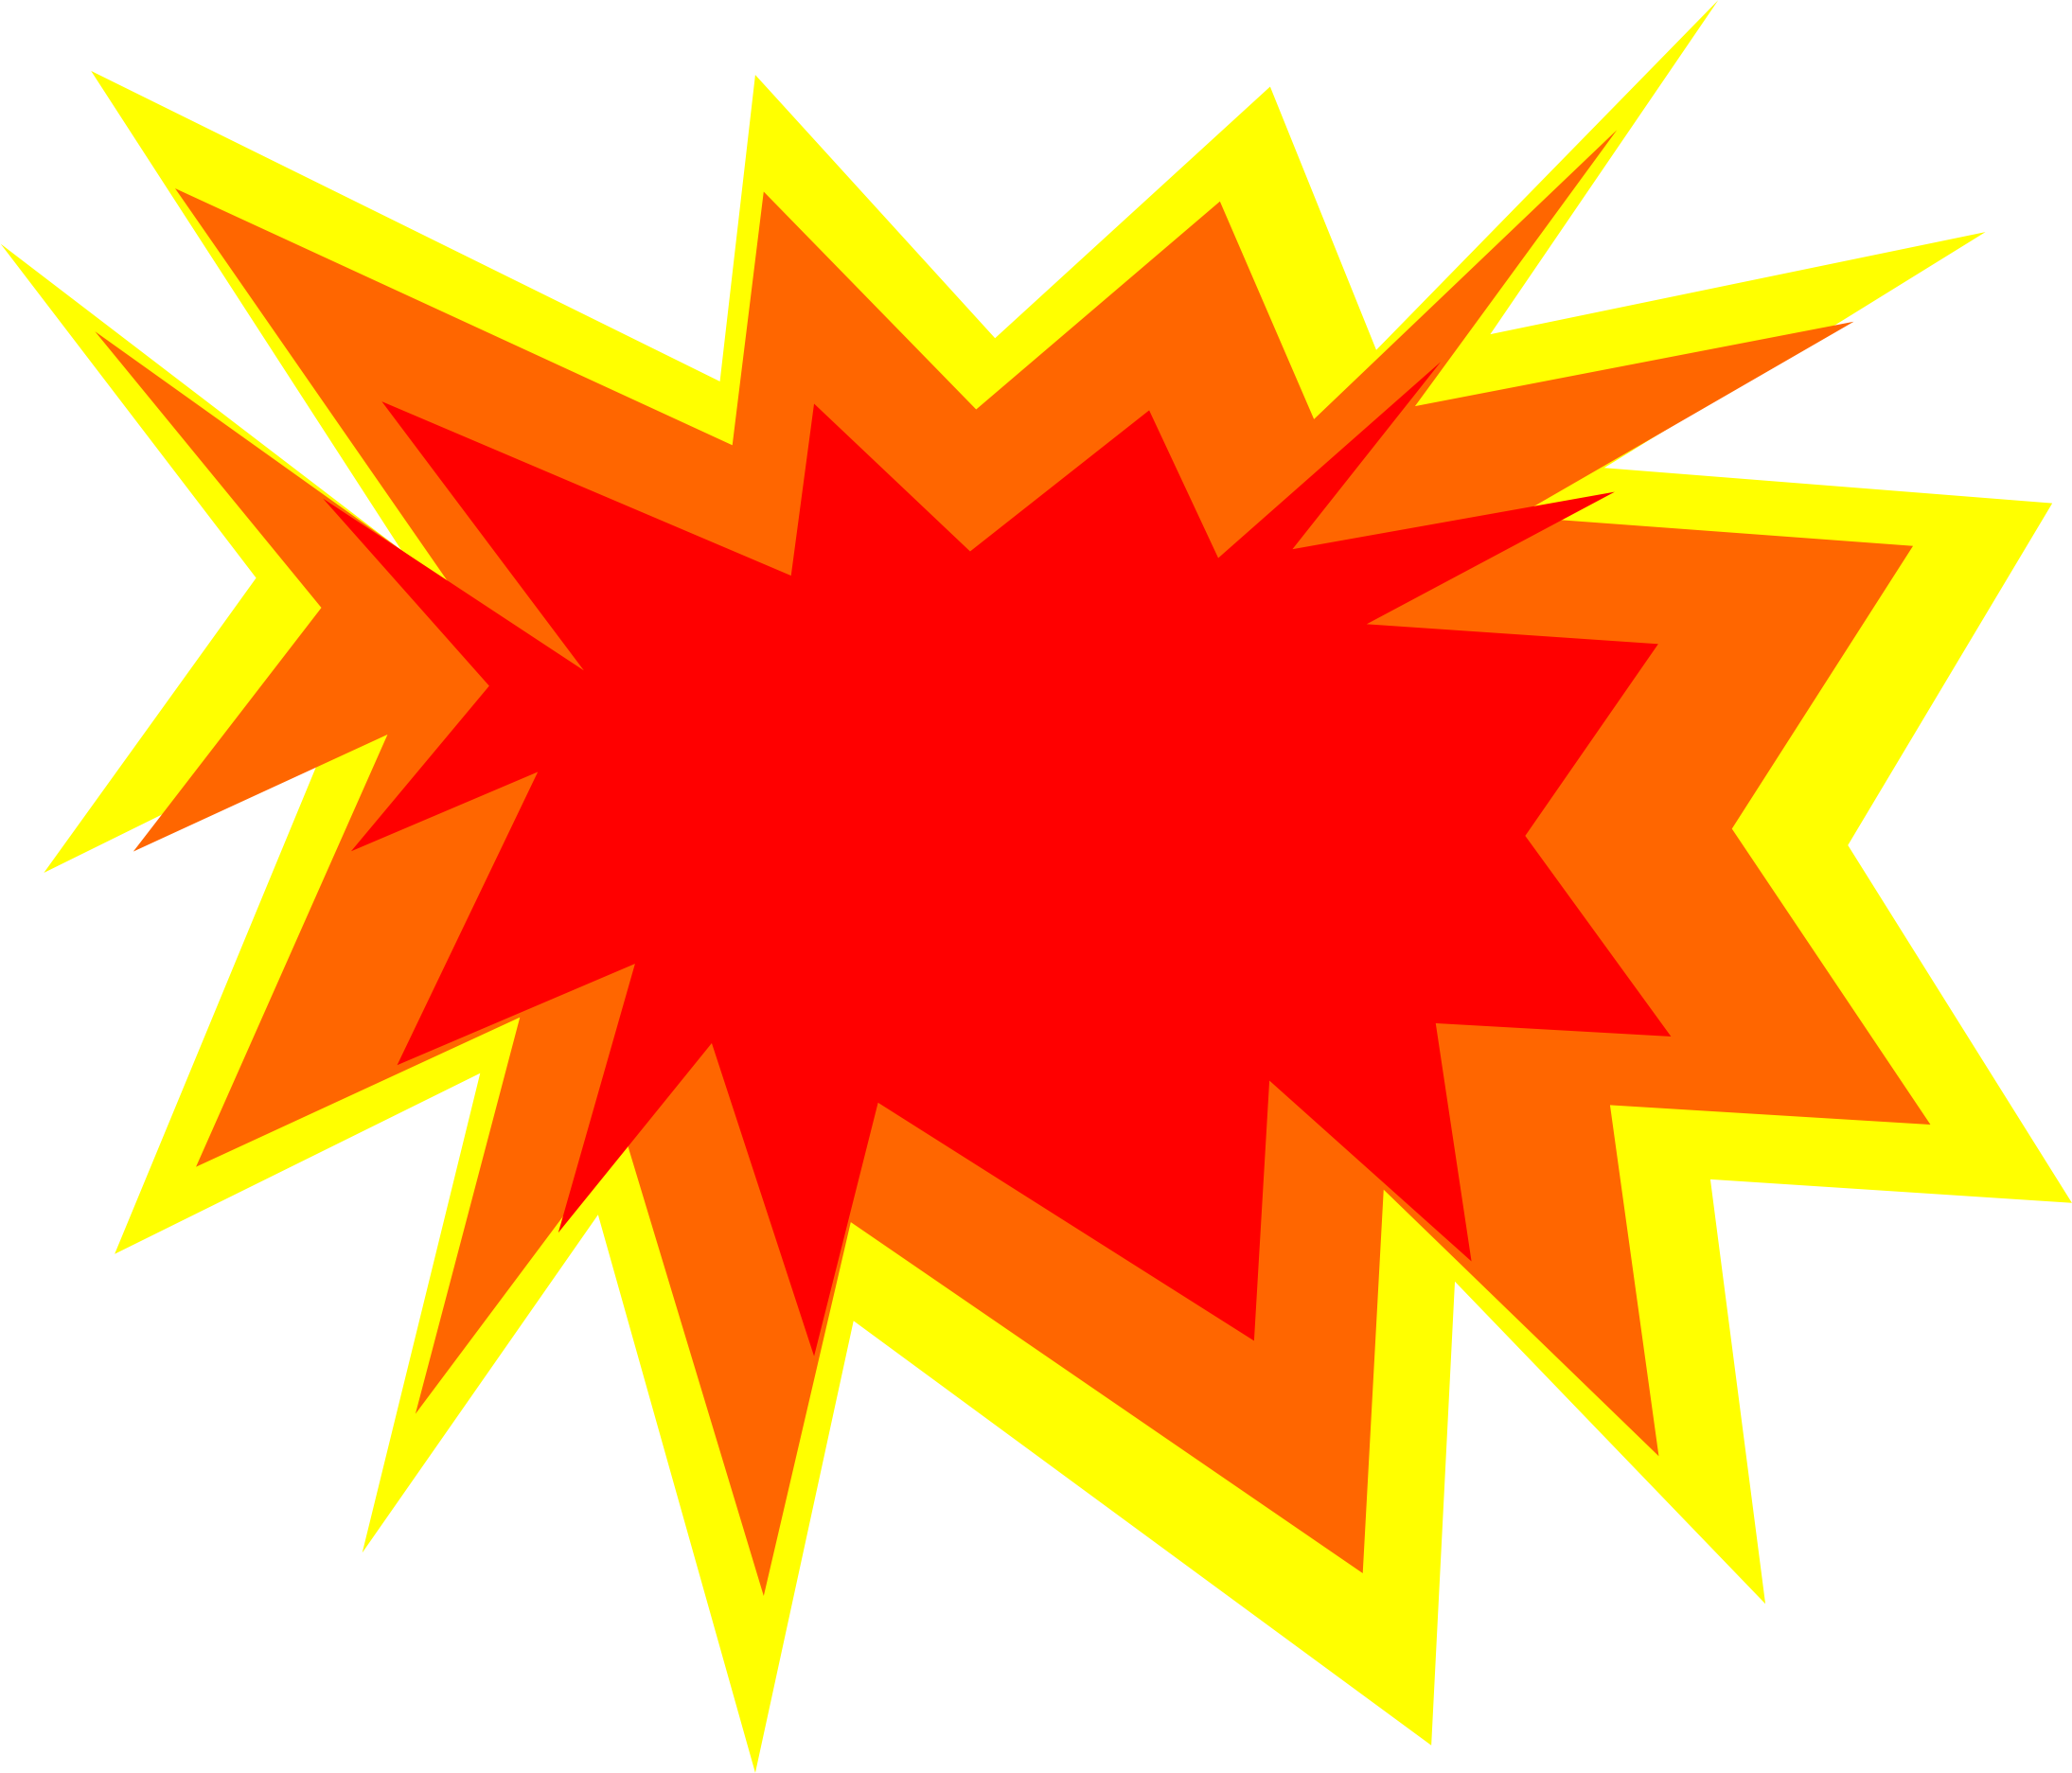 Explosions clipart #20